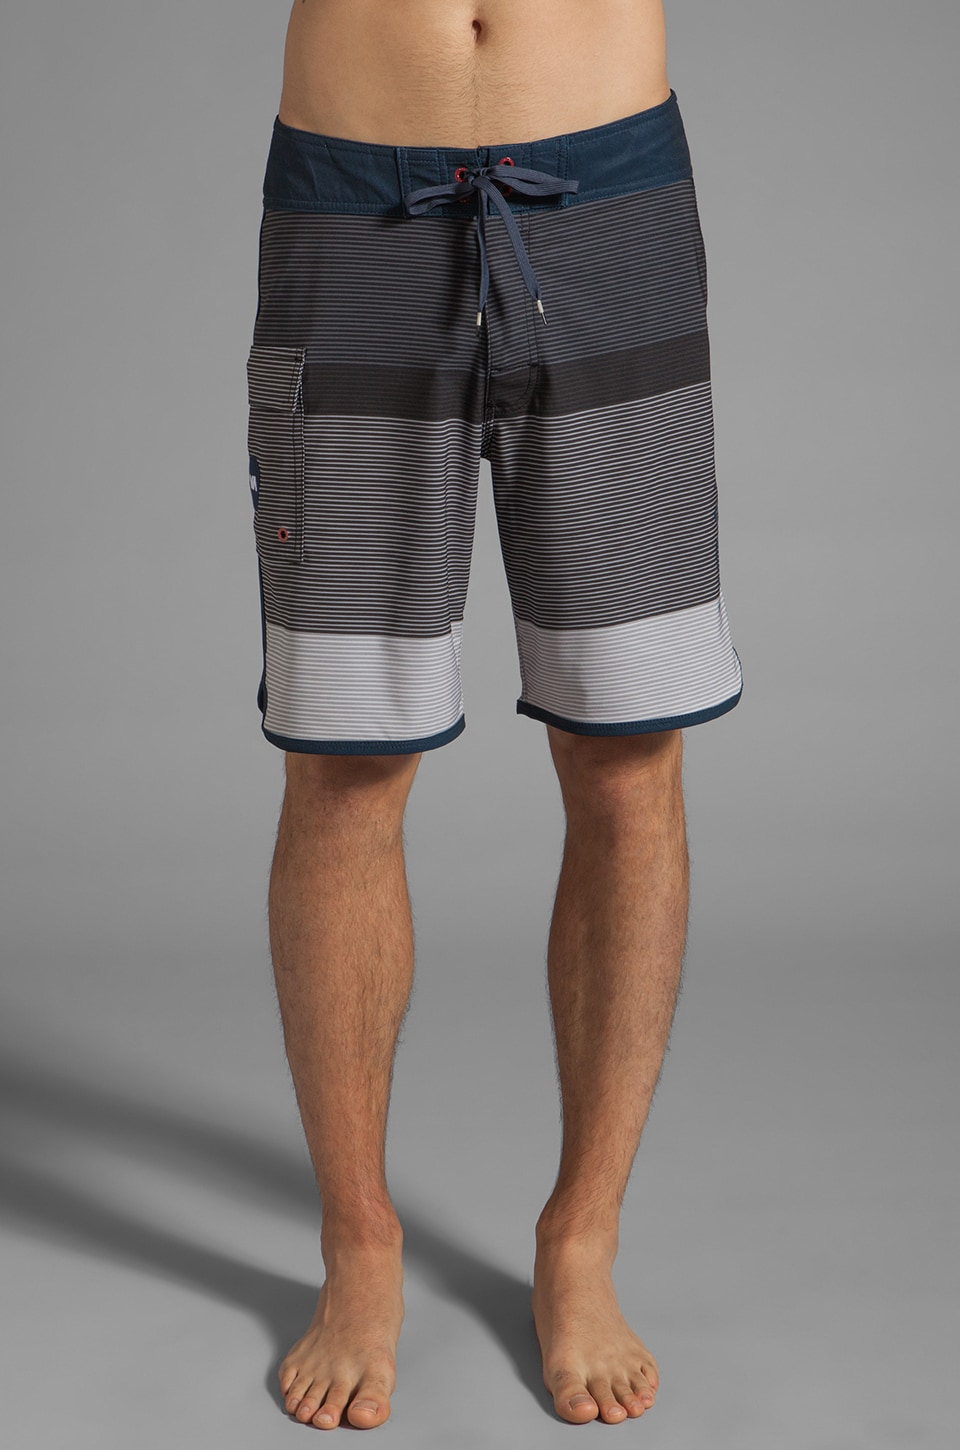 RVCA Commander Trunk in Pavement